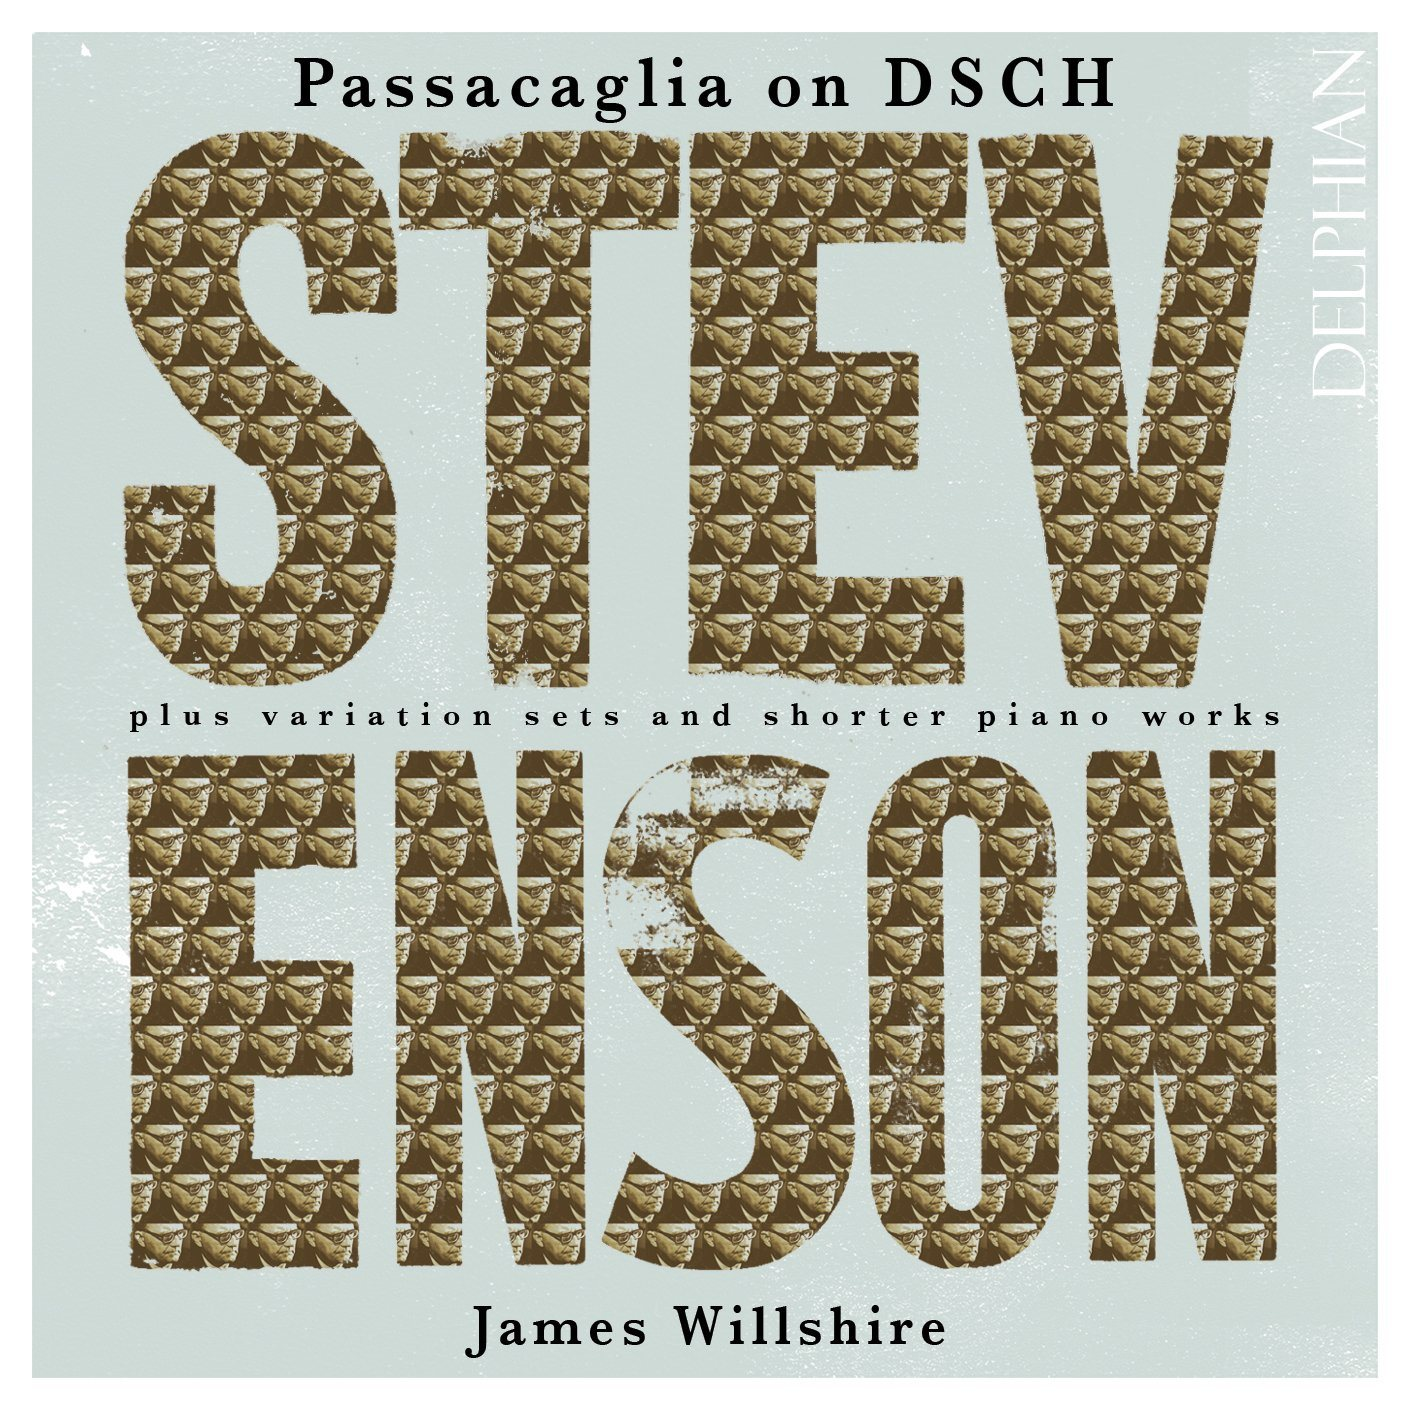 Ronald Stevenson: Passacaglia on DSCH; Bax & Pizzetti Variations; etc. CD Delphian Records